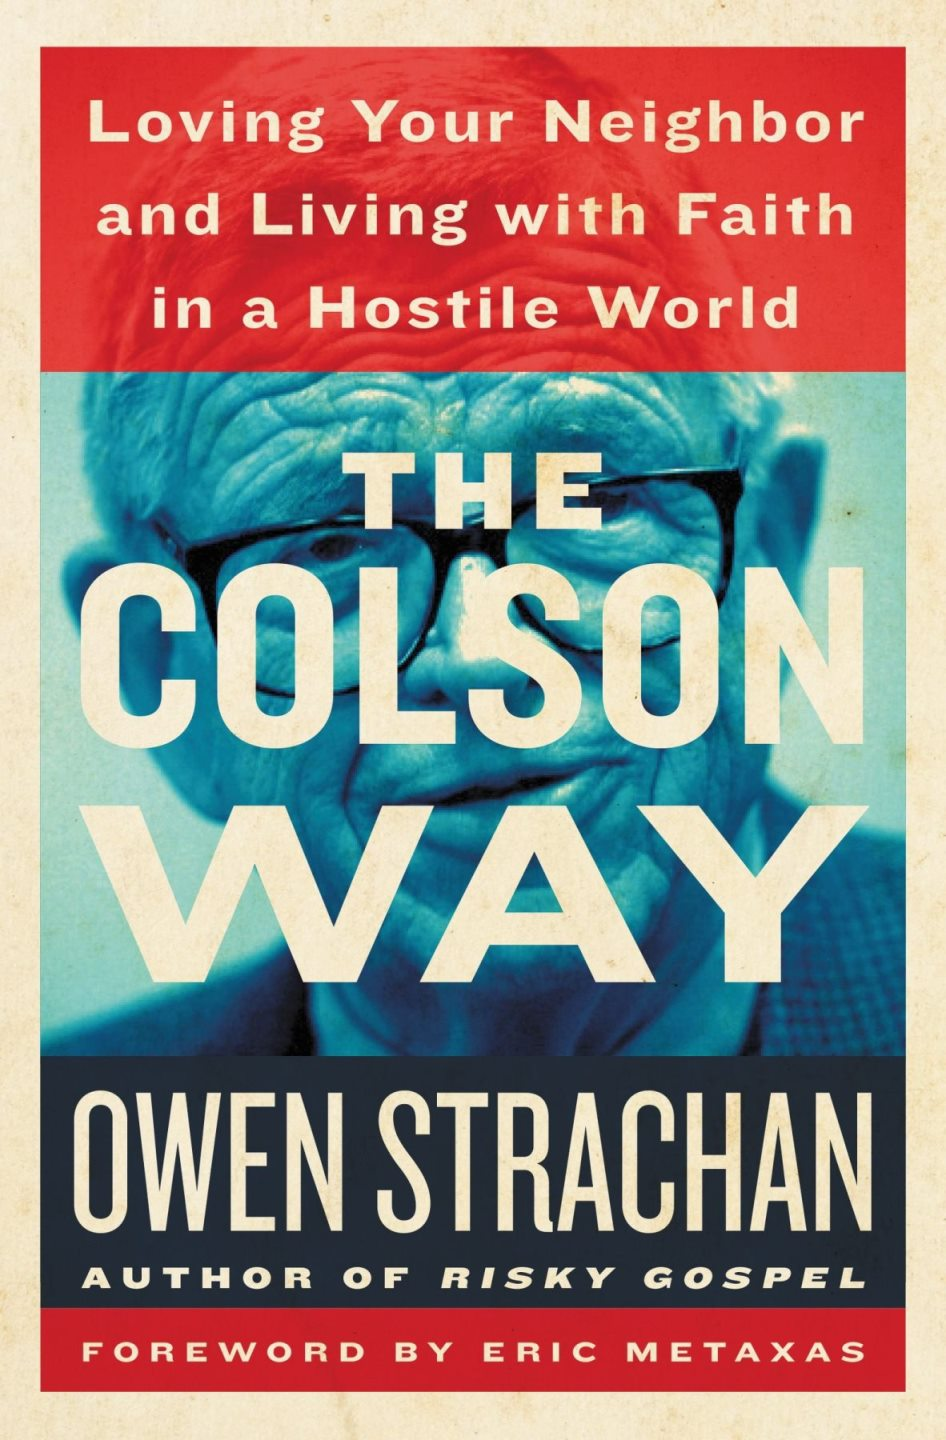 colson-way-owen-strachan